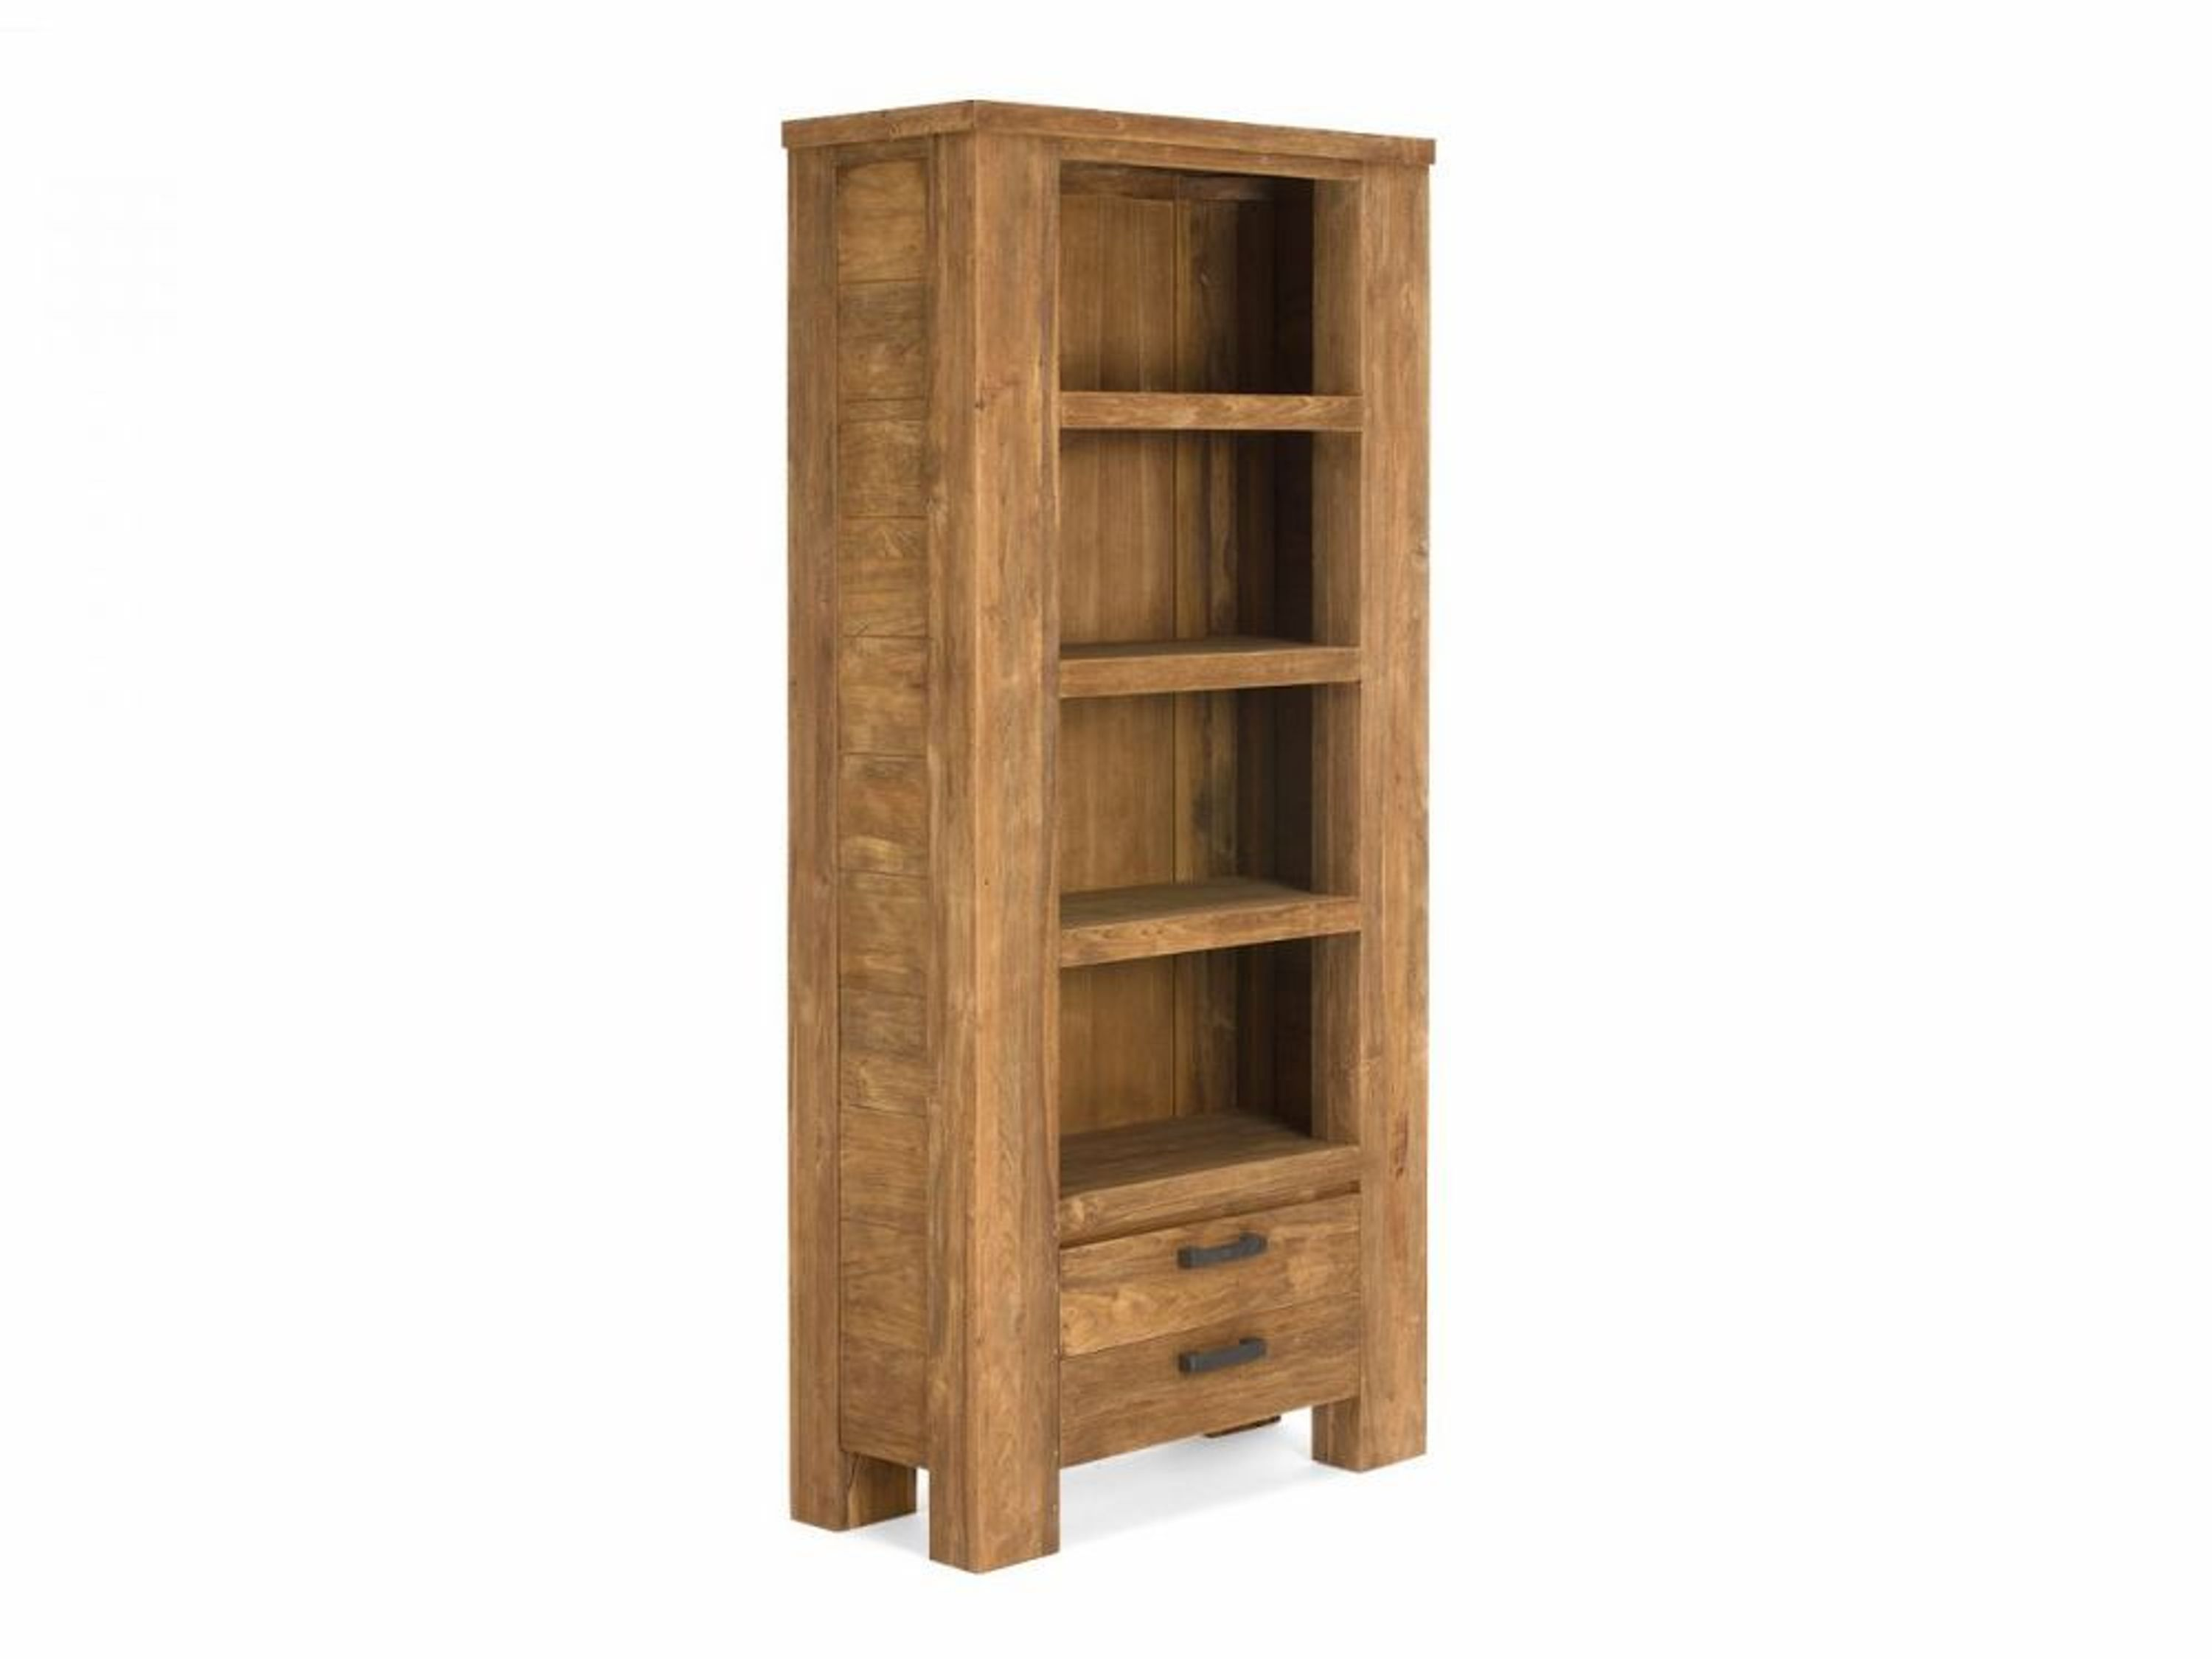 Bücherregal Teak massiv Holz rustikal Regal + 2 Schubladen  ~ Bücherregal Teak